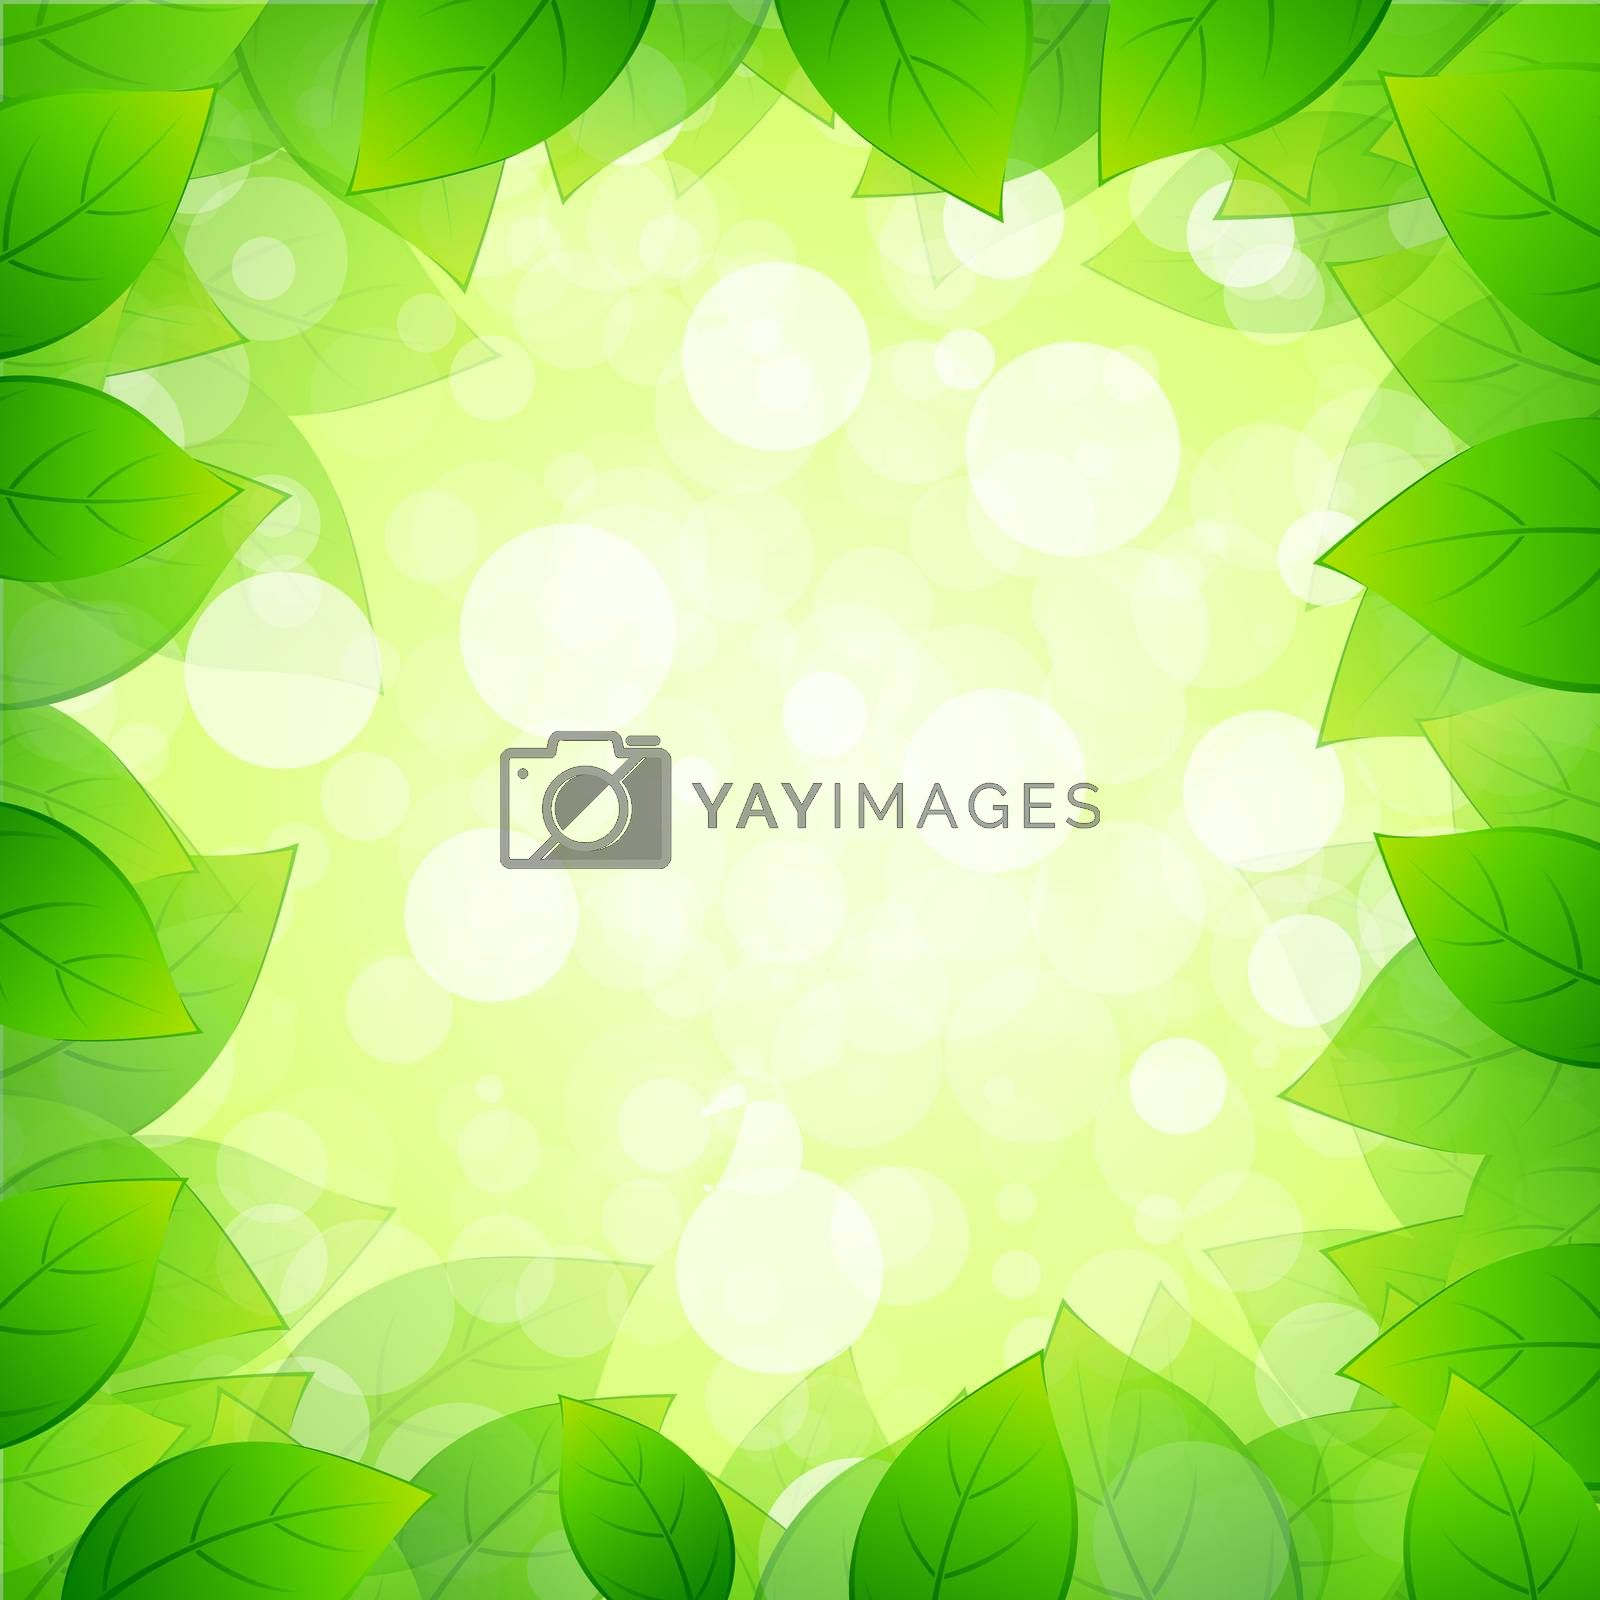 Green Framing with Leaves by WaD